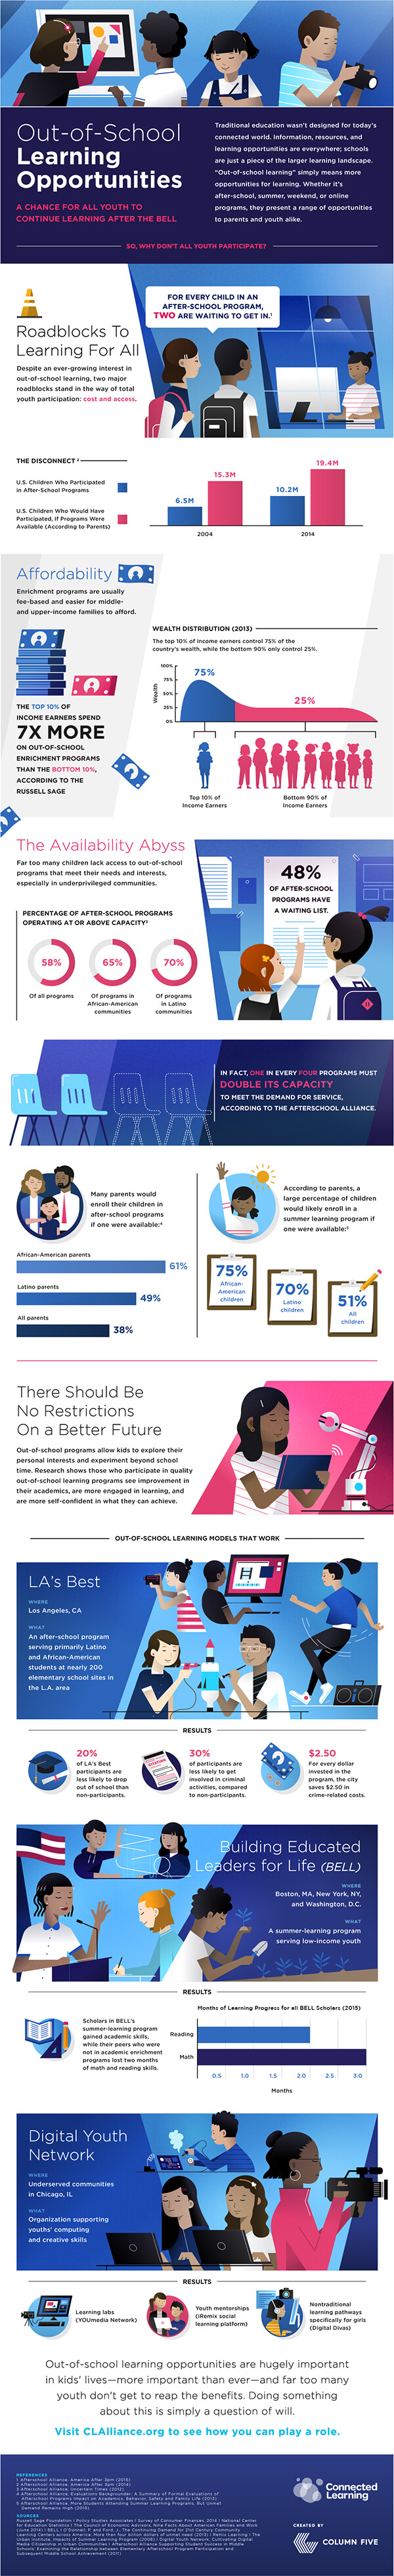 Out-of-school connected learrning opportunities graphic